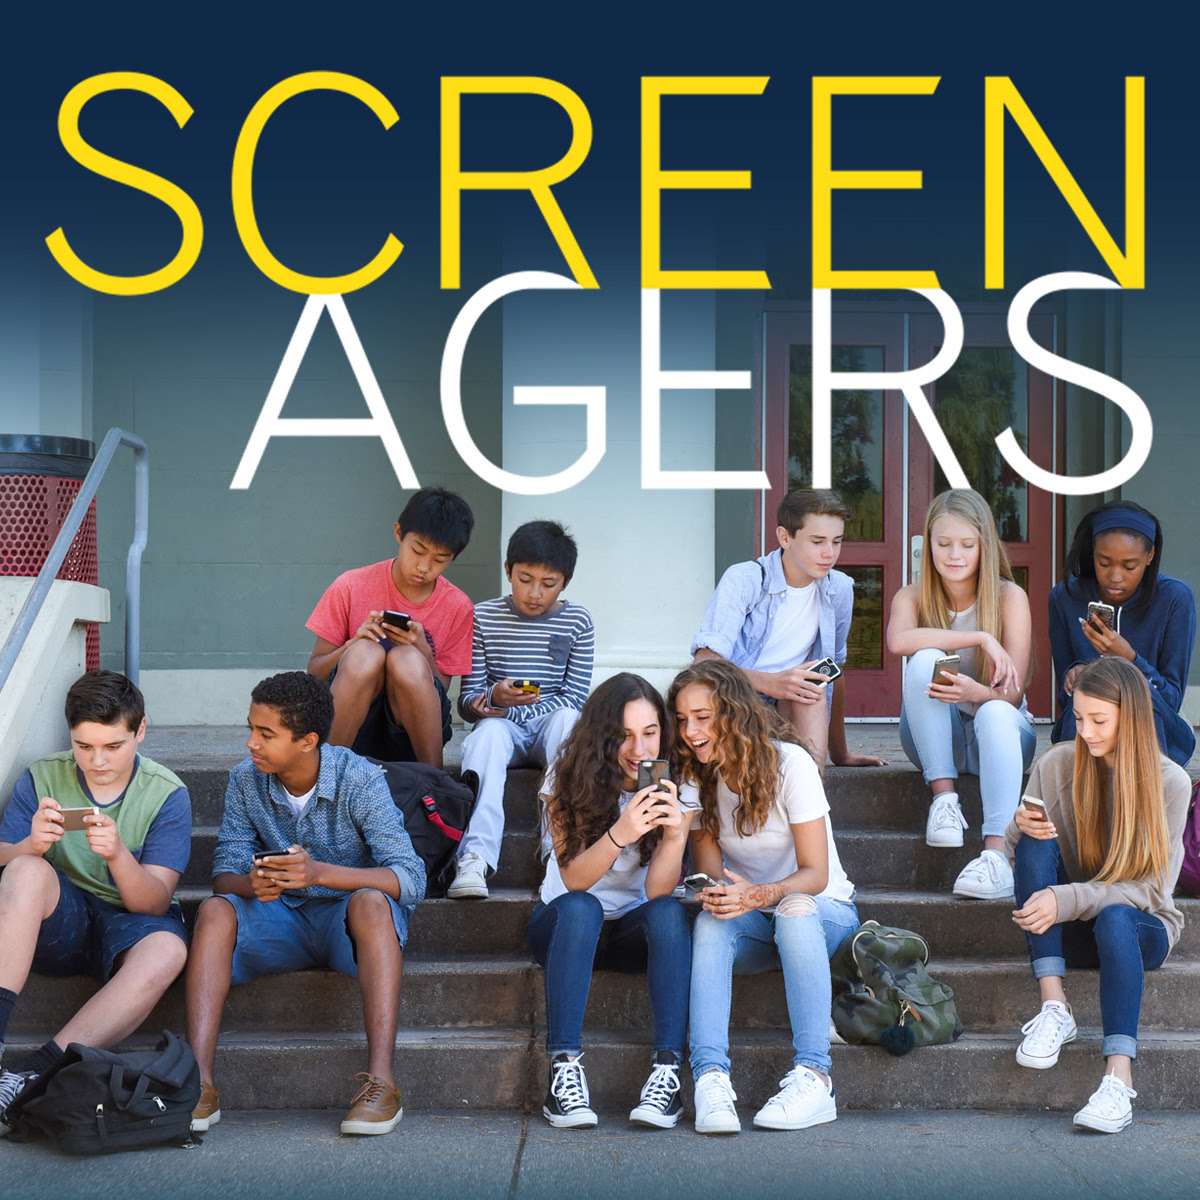 Screenagers Film Presented By Rocky Hill Youth & Family Services